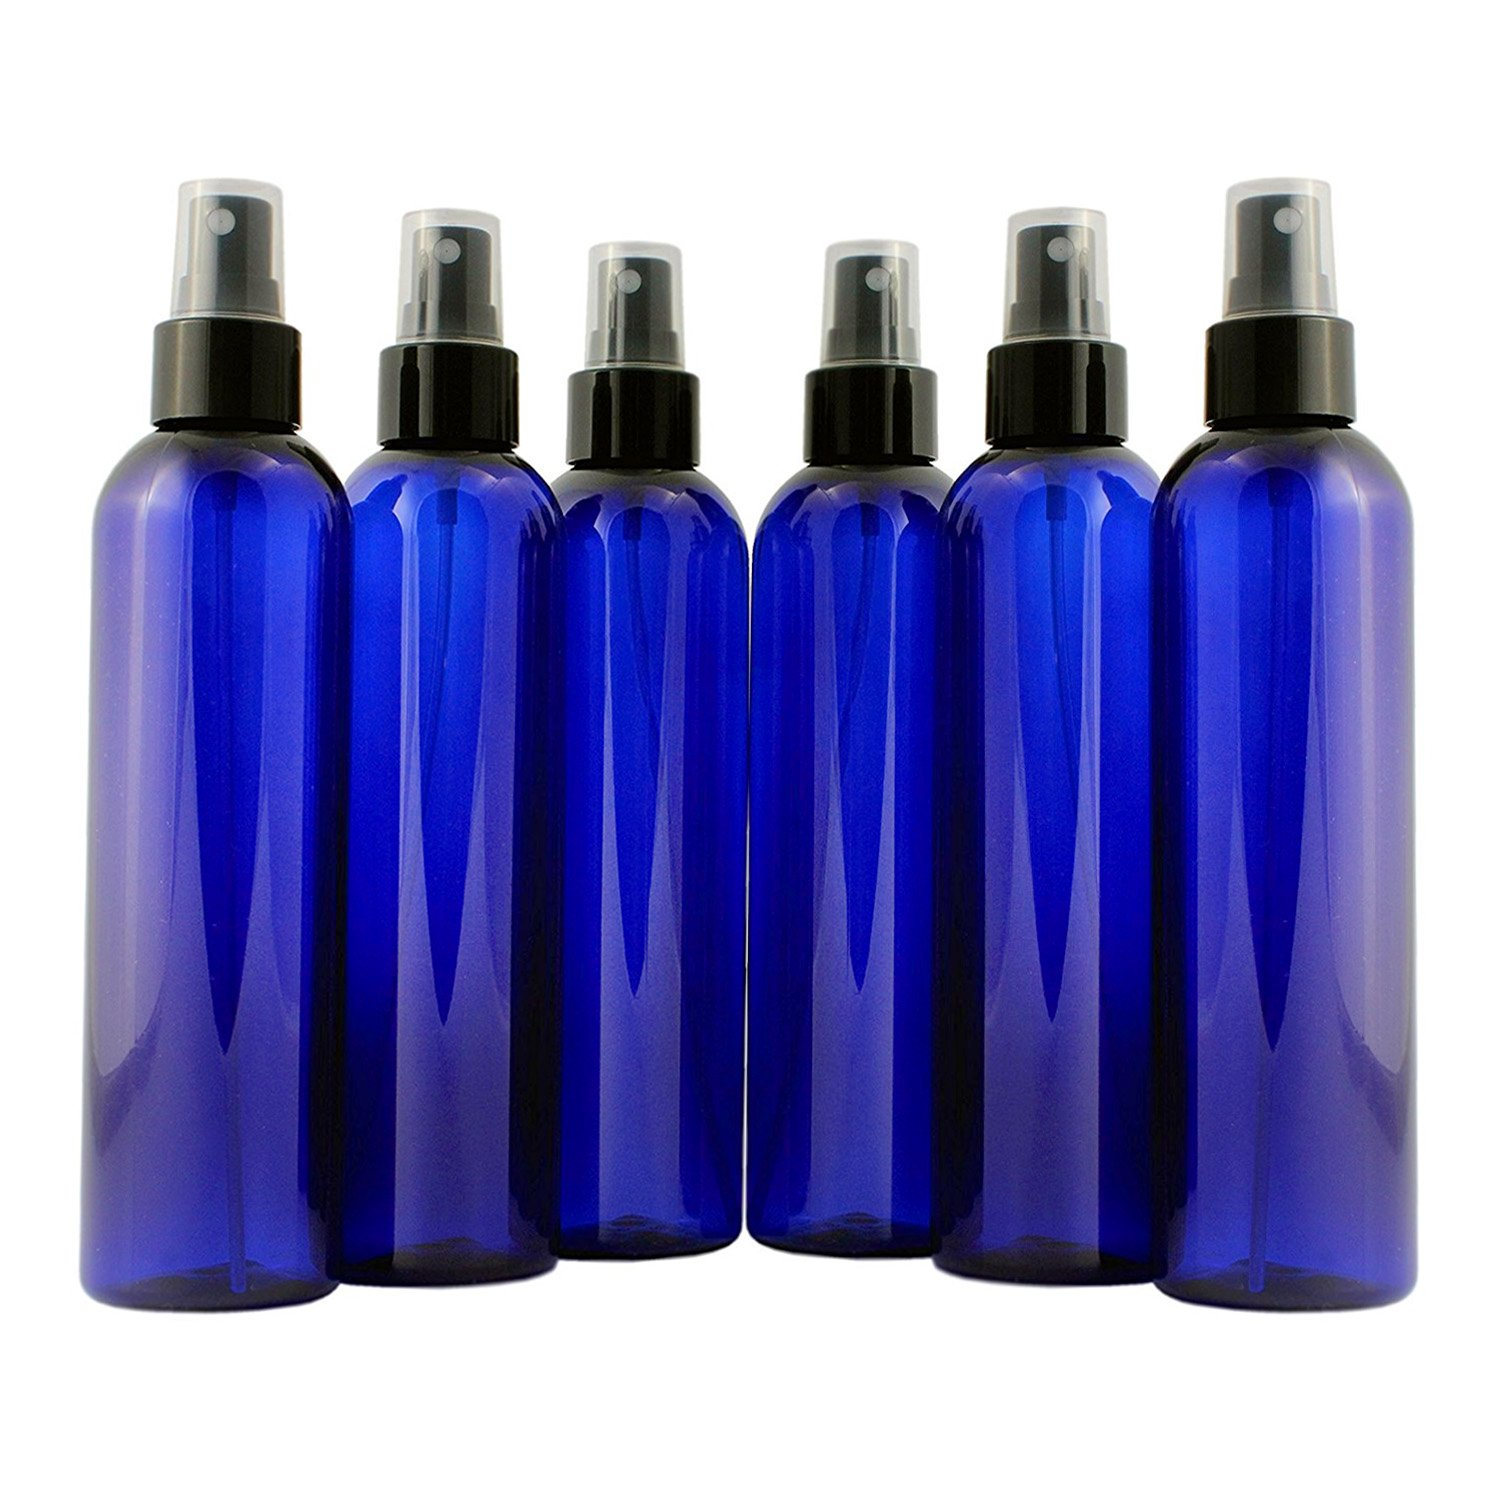 8oz Cobalt Blue Plastic PET Spray Bottles w/Fine Mist Atomizers (6-pack); for DIY Home Cleaning, Aromatherapy, Beauty Care by Cornucopia Brands (Image #6)